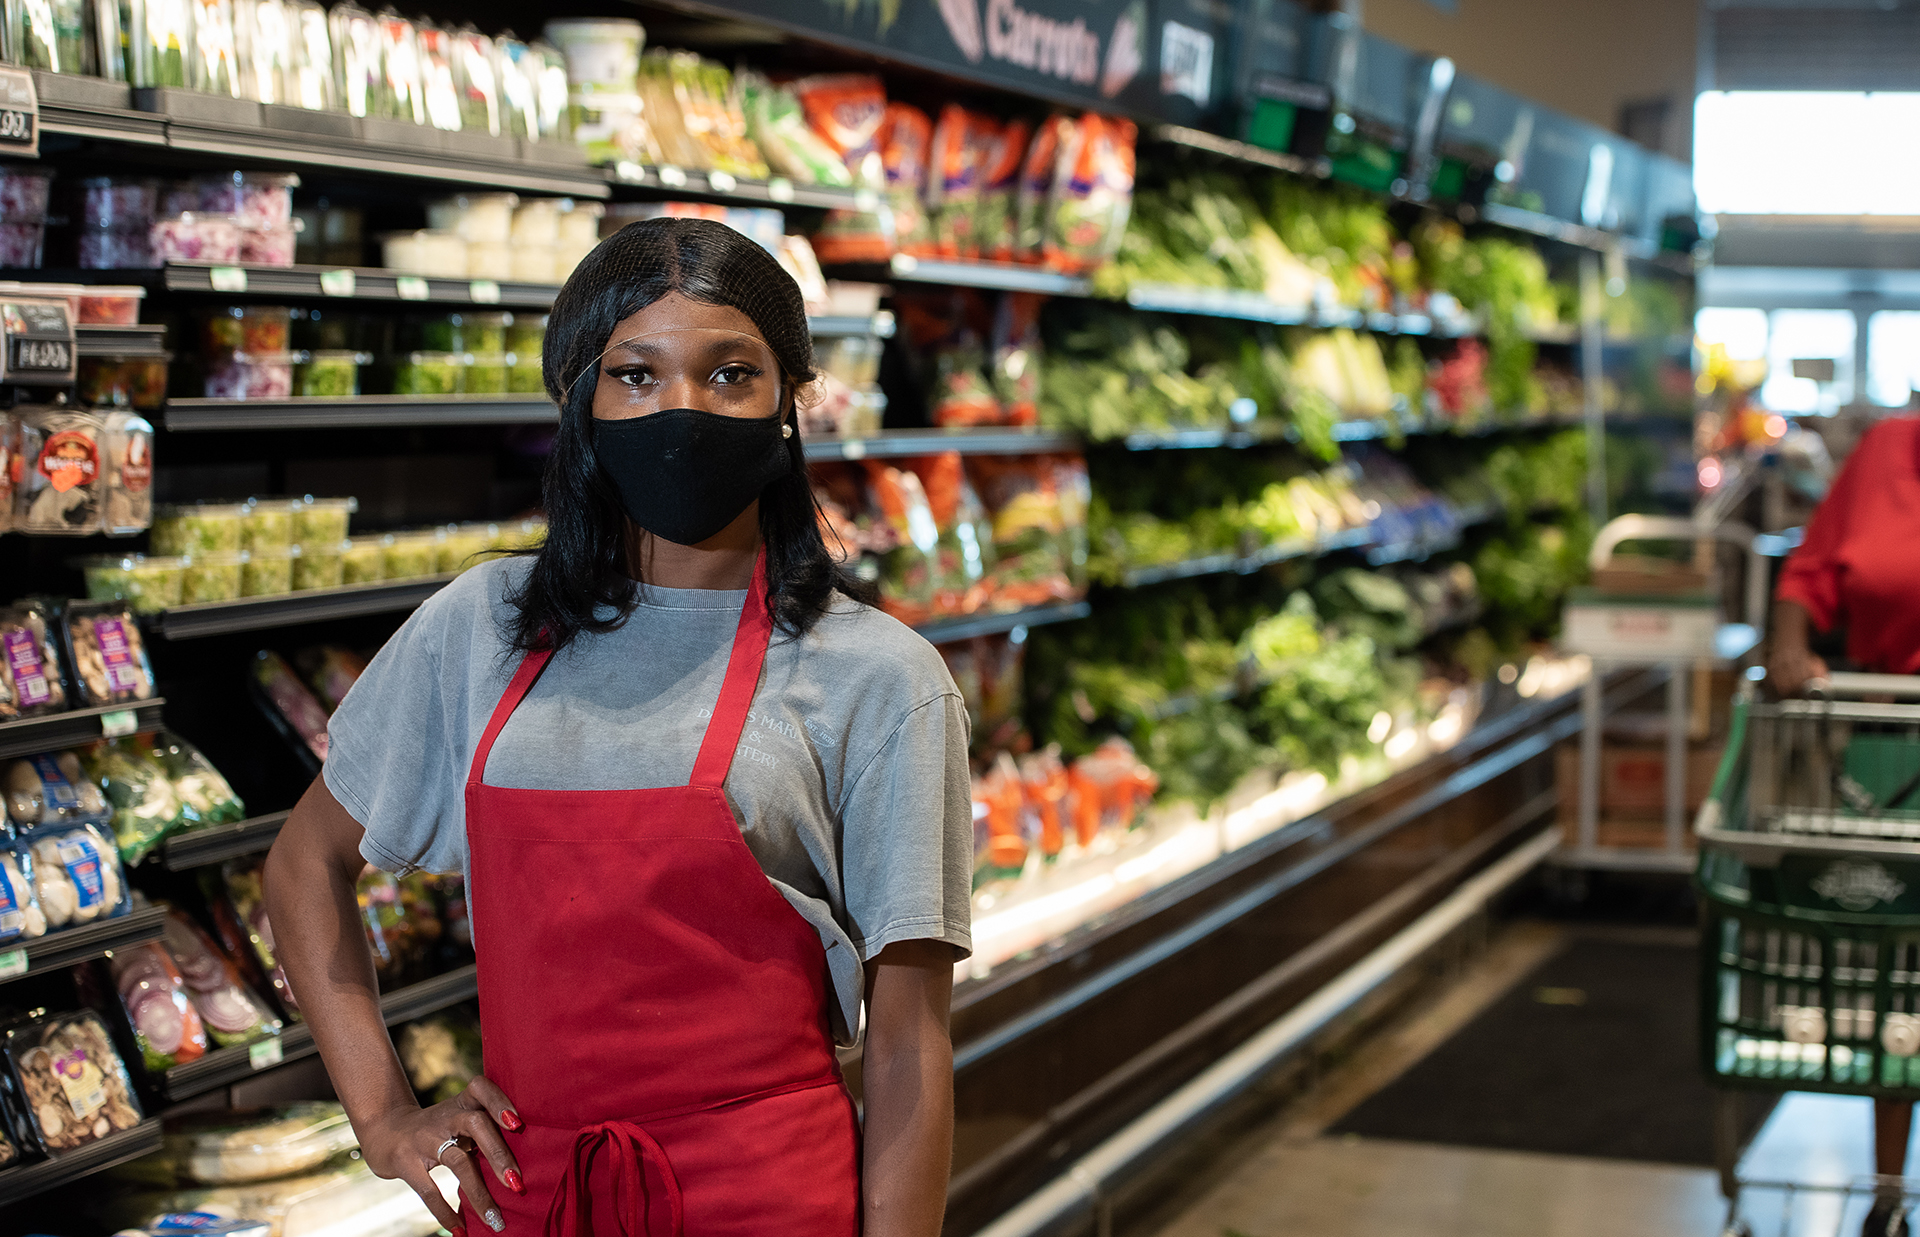 America's Largest Food & Retail Union Calls on CDC for COVID-19 Vaccine Early Access for Essential Workers in Grocery, Meatpacking, and Food Processing on Frontlines of Pandemic as Infections Skyrocket - The